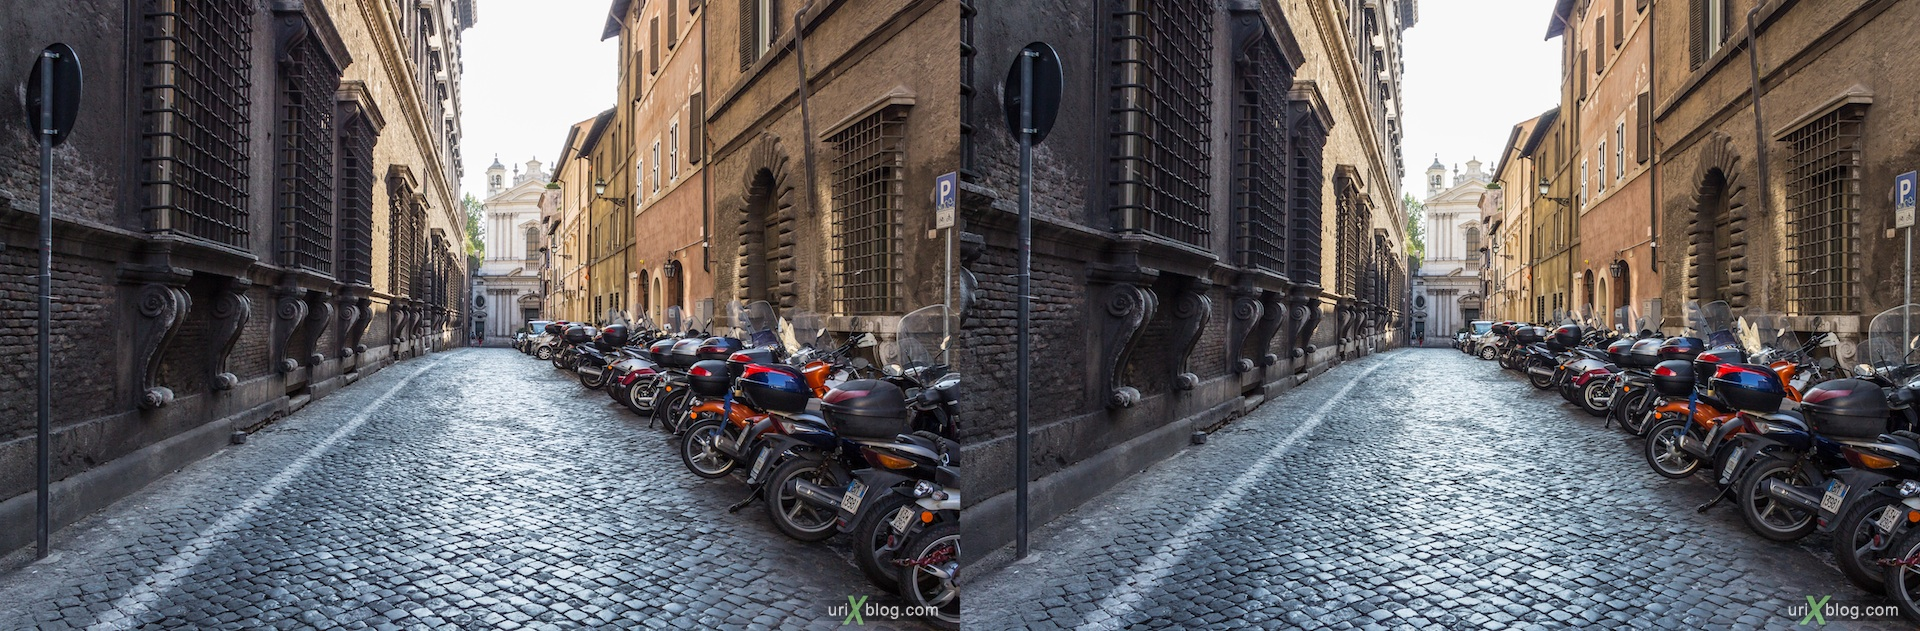 2012, piazza Farnese square, via dei Farnesi street, 3D, stereo pair, cross-eyed, crossview, cross view stereo pair